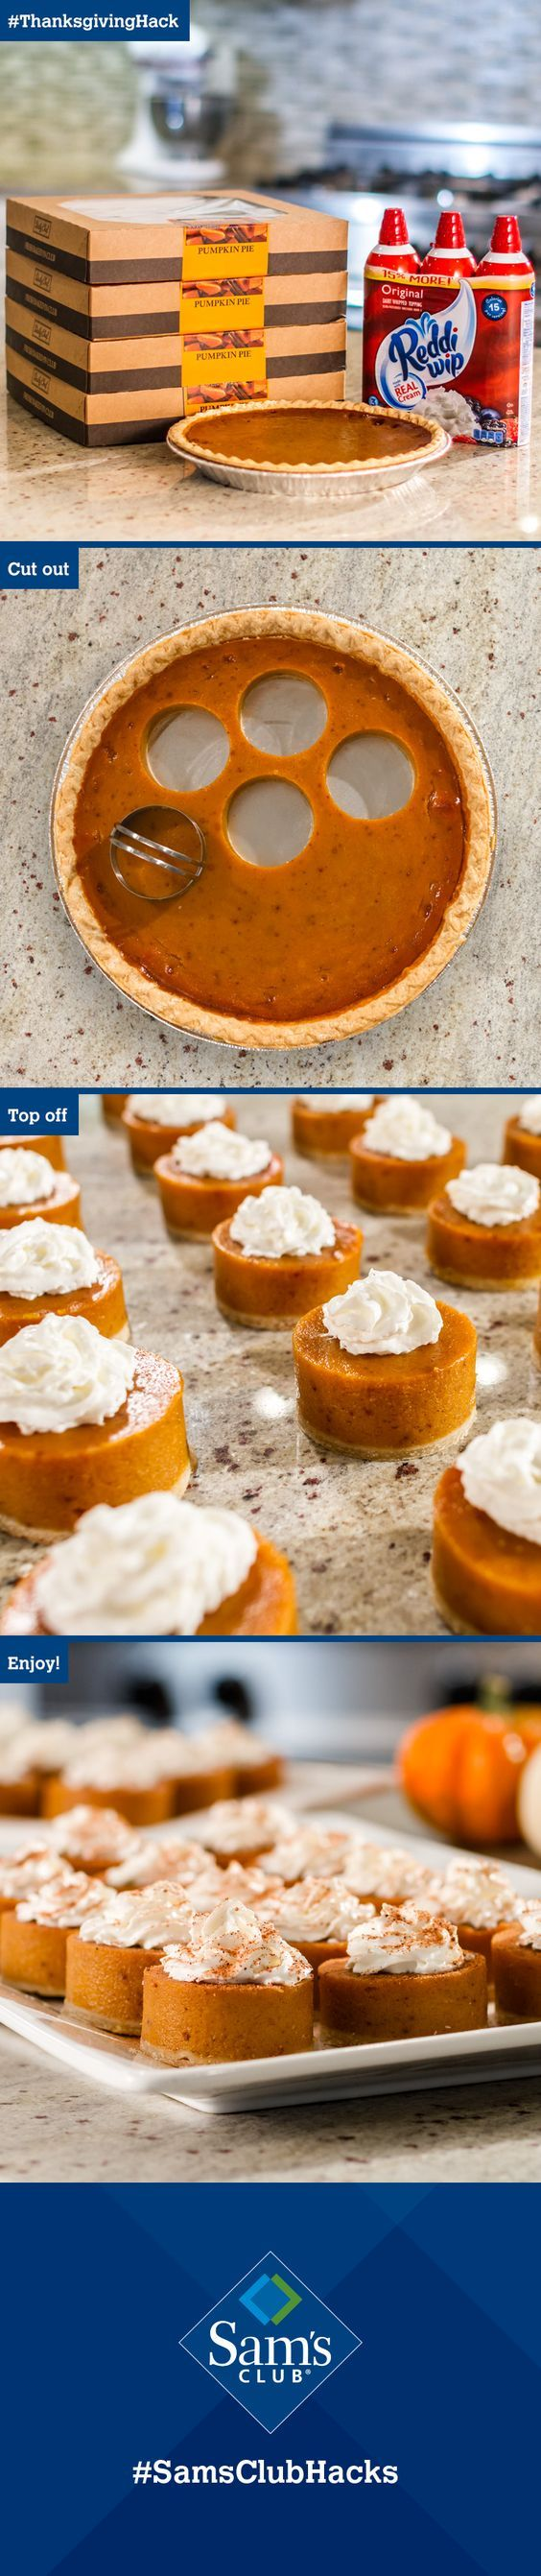 """Family will gobble up this easy #ThanksgivingHack! Take a 2"""" biscuit cutter to four Sam's Club pumpkin pies and voila! Adorable minis for 32 guests. Top off with Reddi-wip and SERVE IMMEDIATELY. Happy Thanksgiving! #SamsClubHacks"""